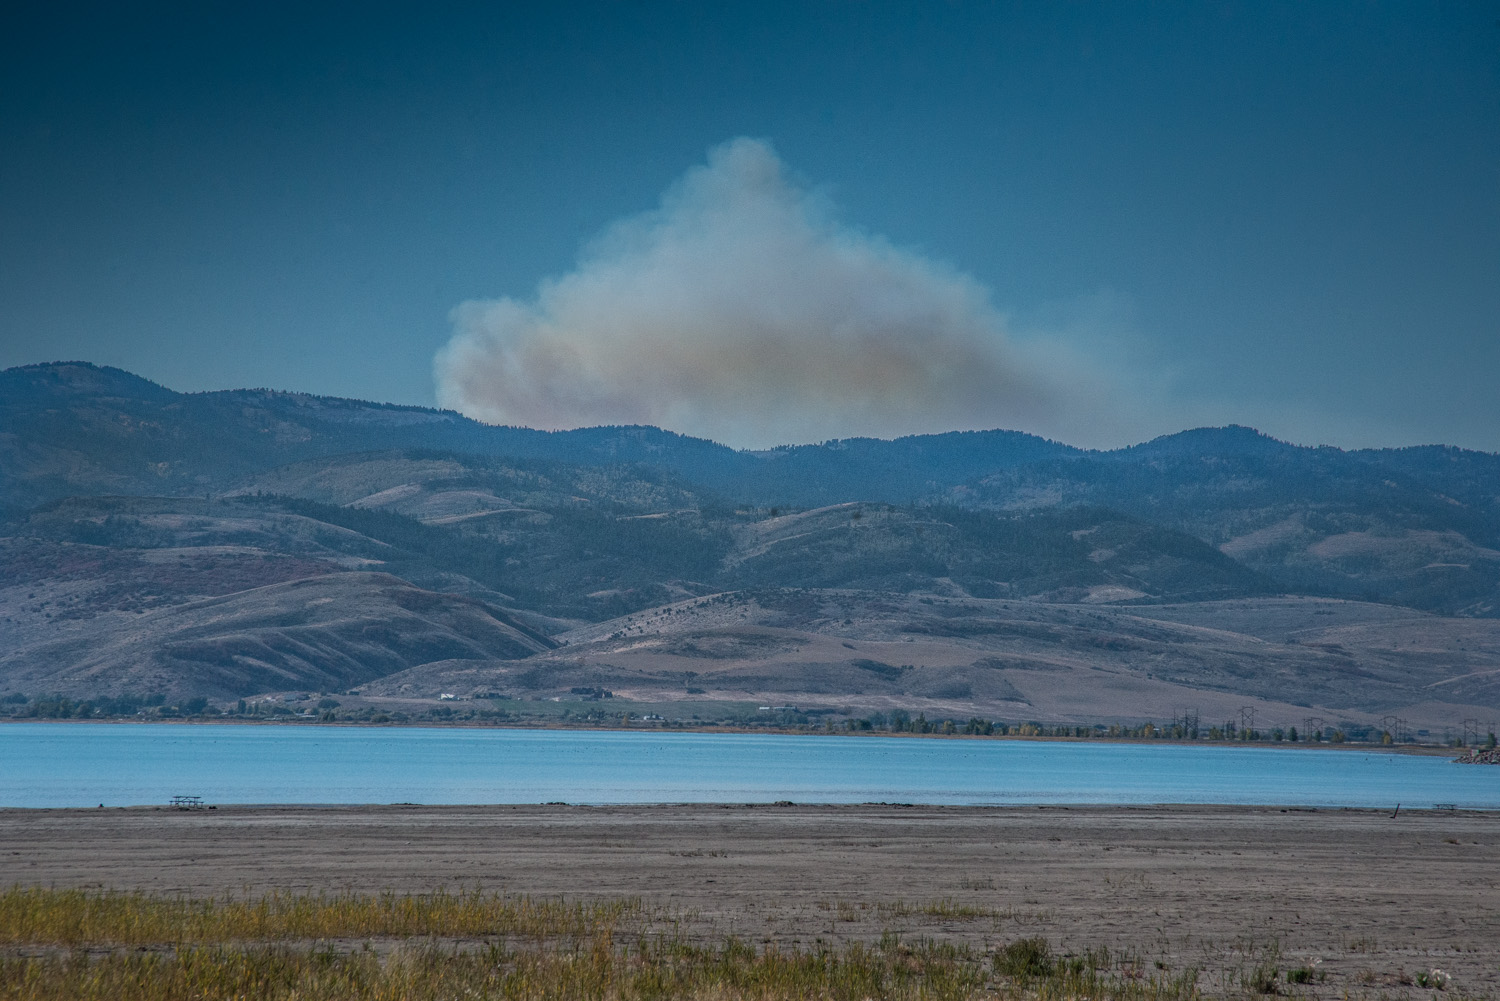 Forrest Fire Above Bear Lake, Idaho. © Robert Welkie